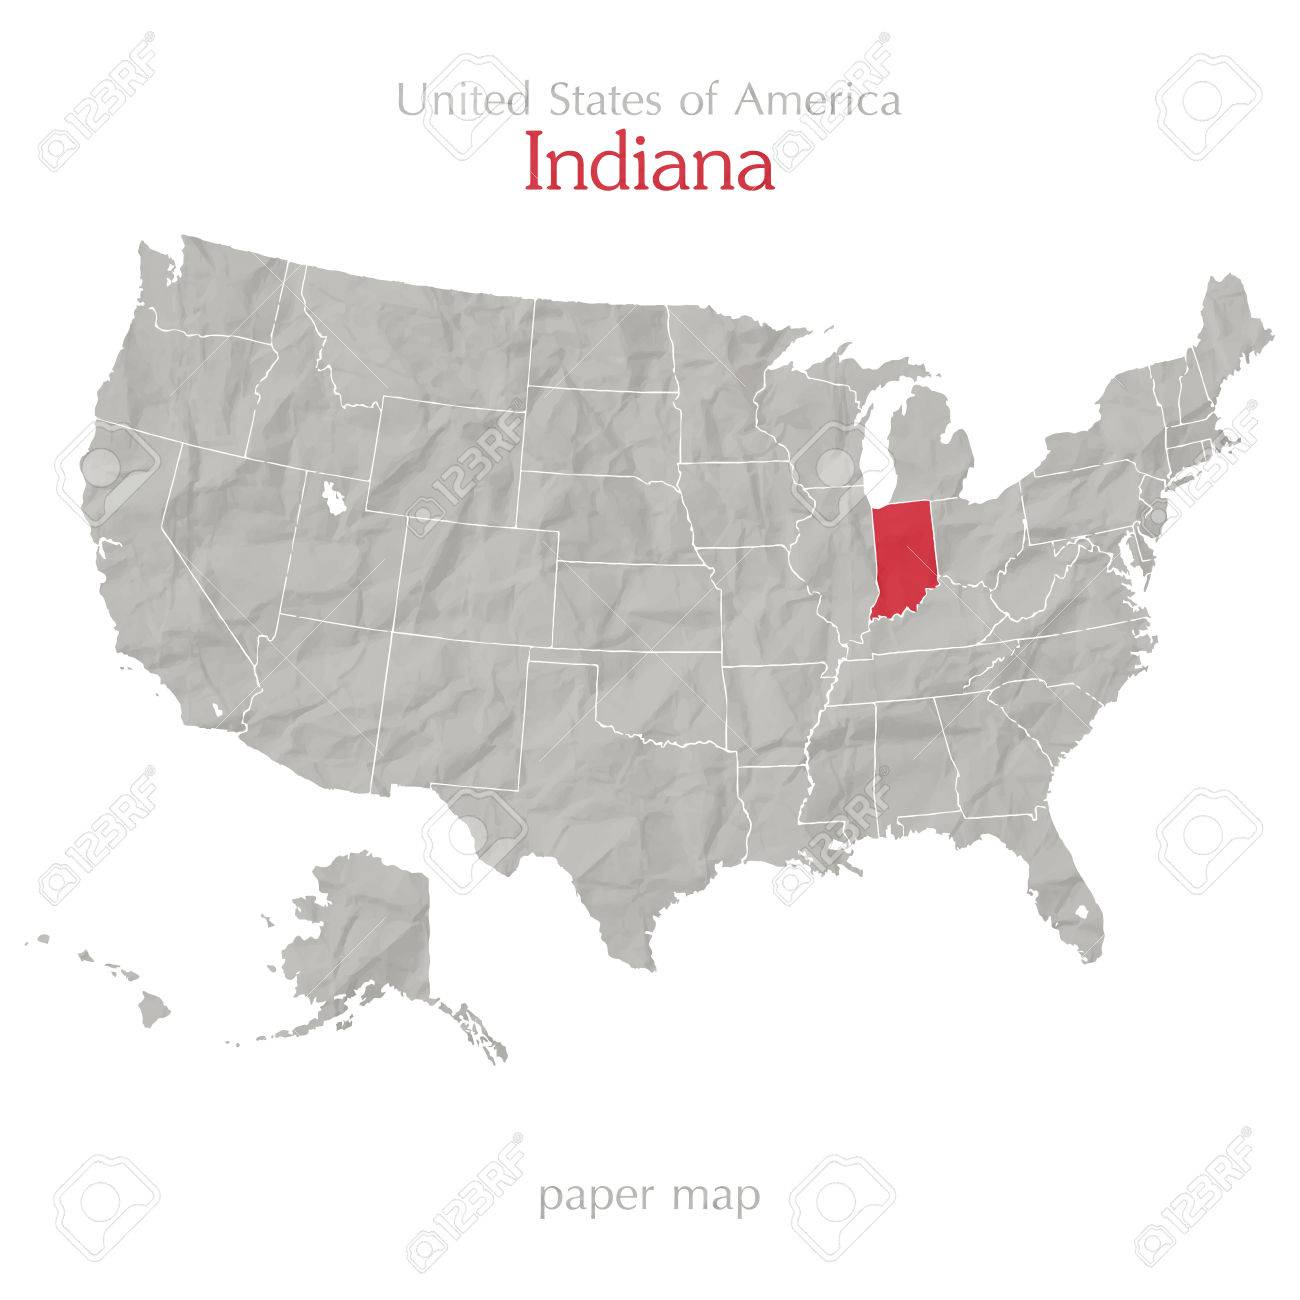 United States Of America Map And Indiana State Territory On Shabby - Indiana state on us map